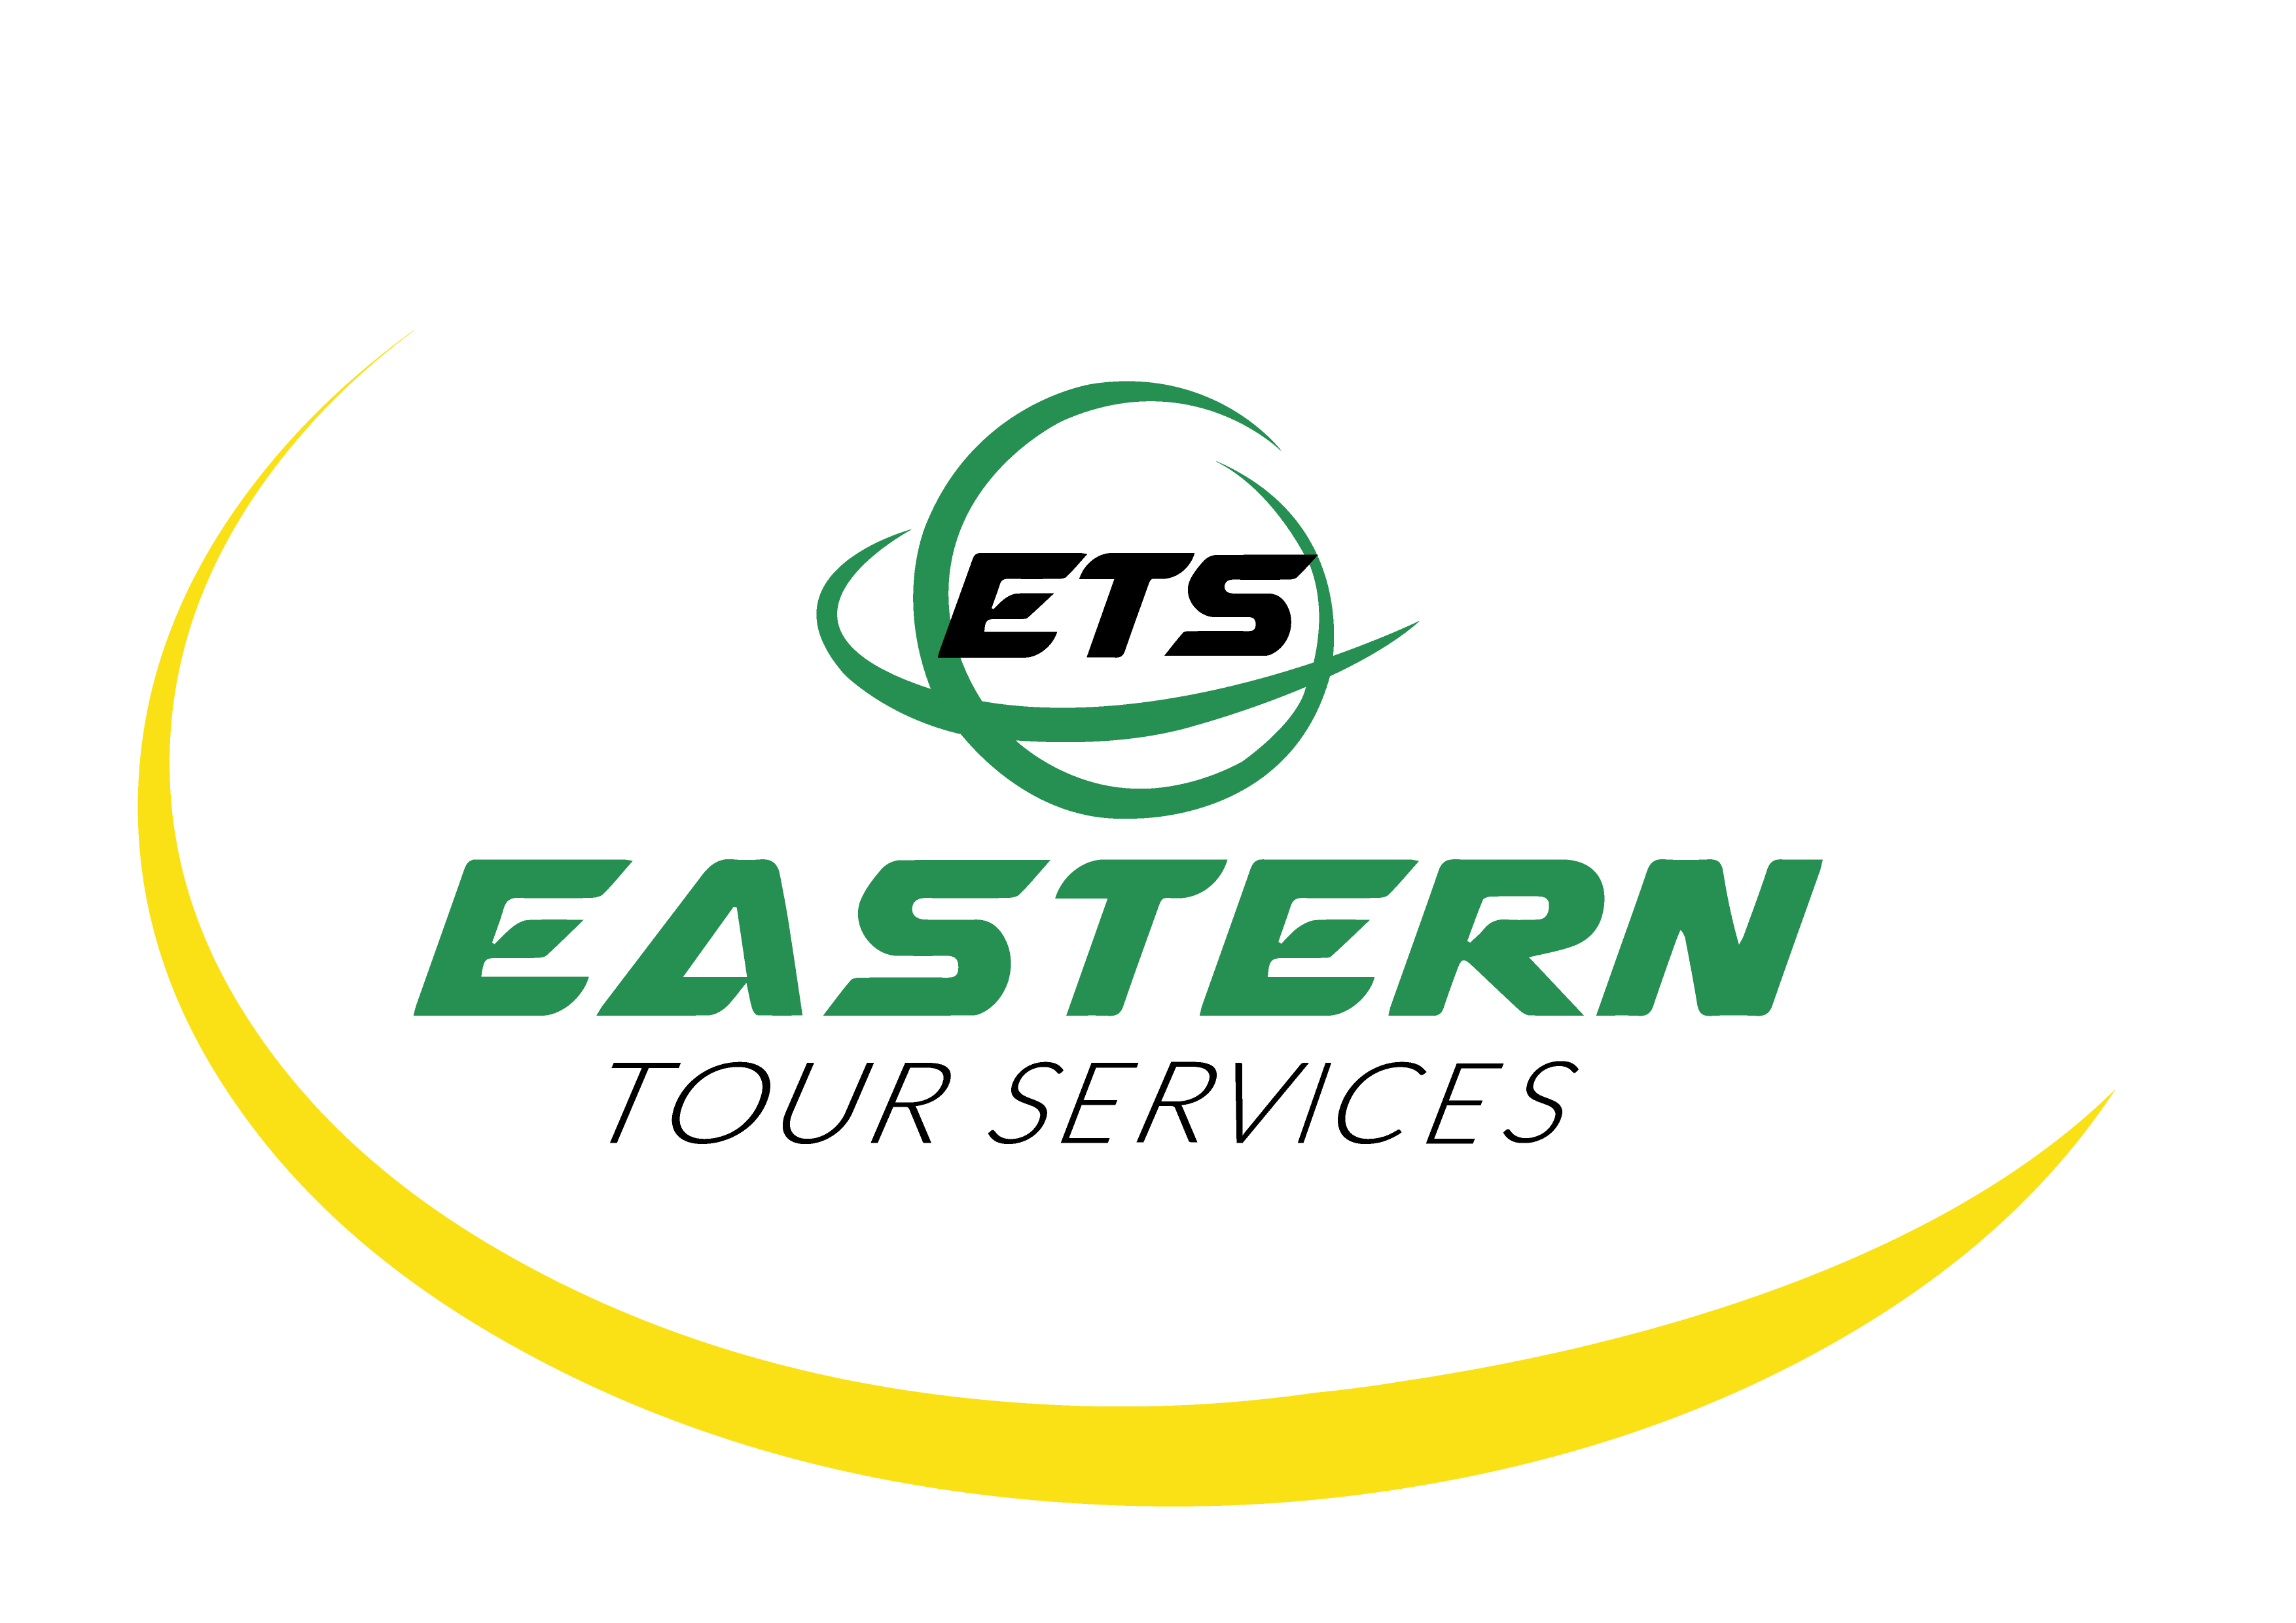 Eastern Tour Services